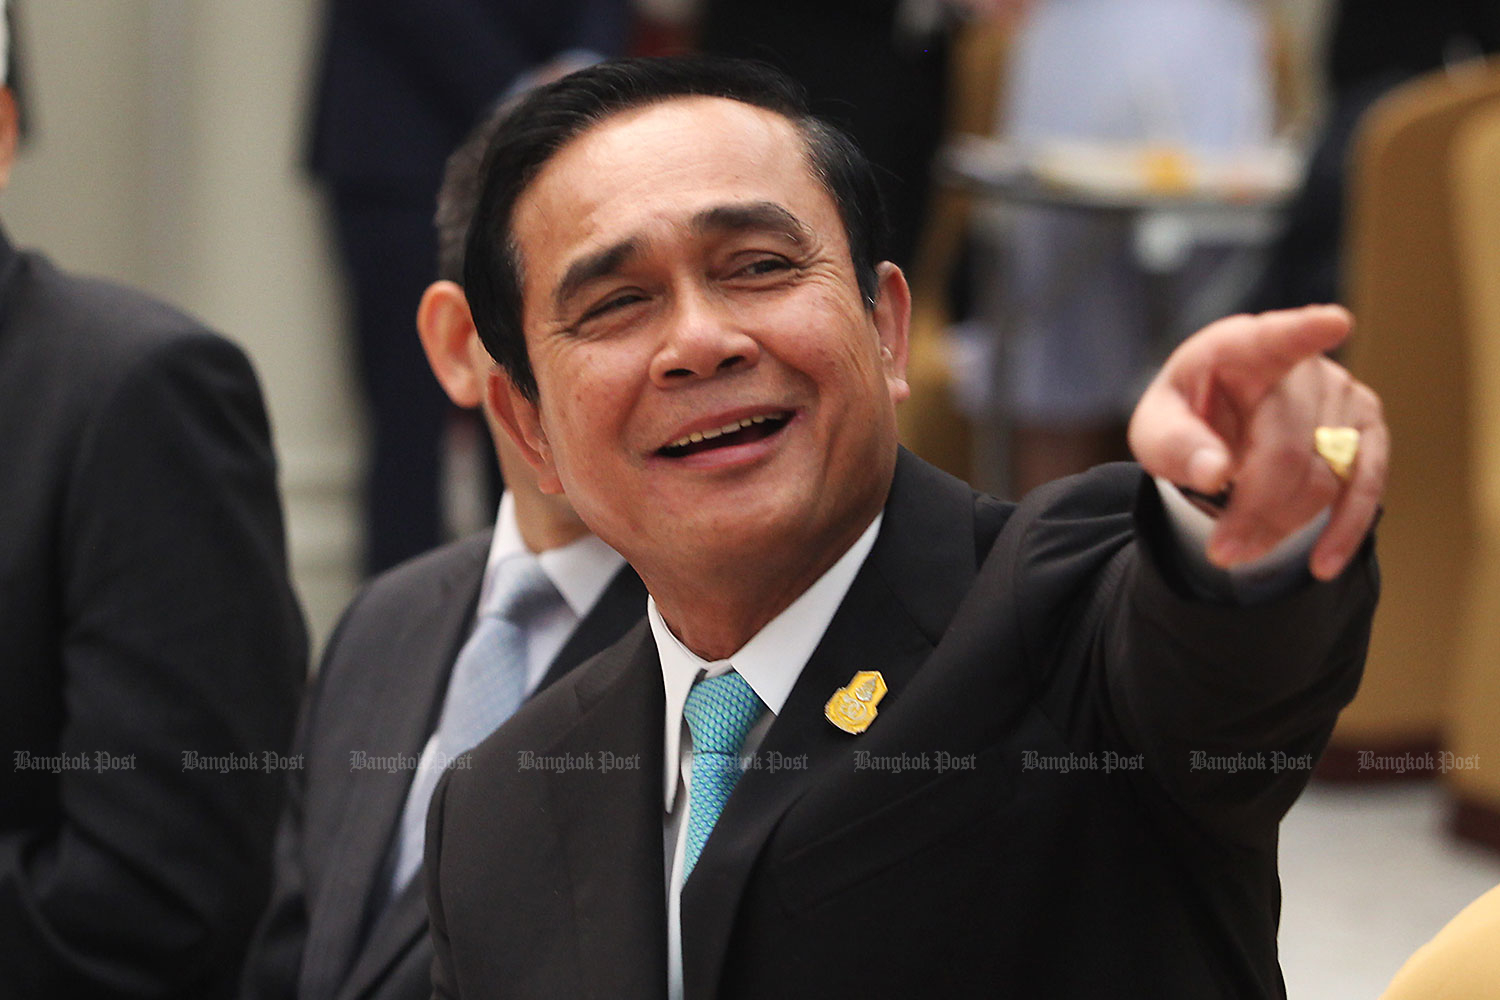 Prayut Chan-o-cha will fly to South Korea on Sunday. (Bangkok Post file photo)